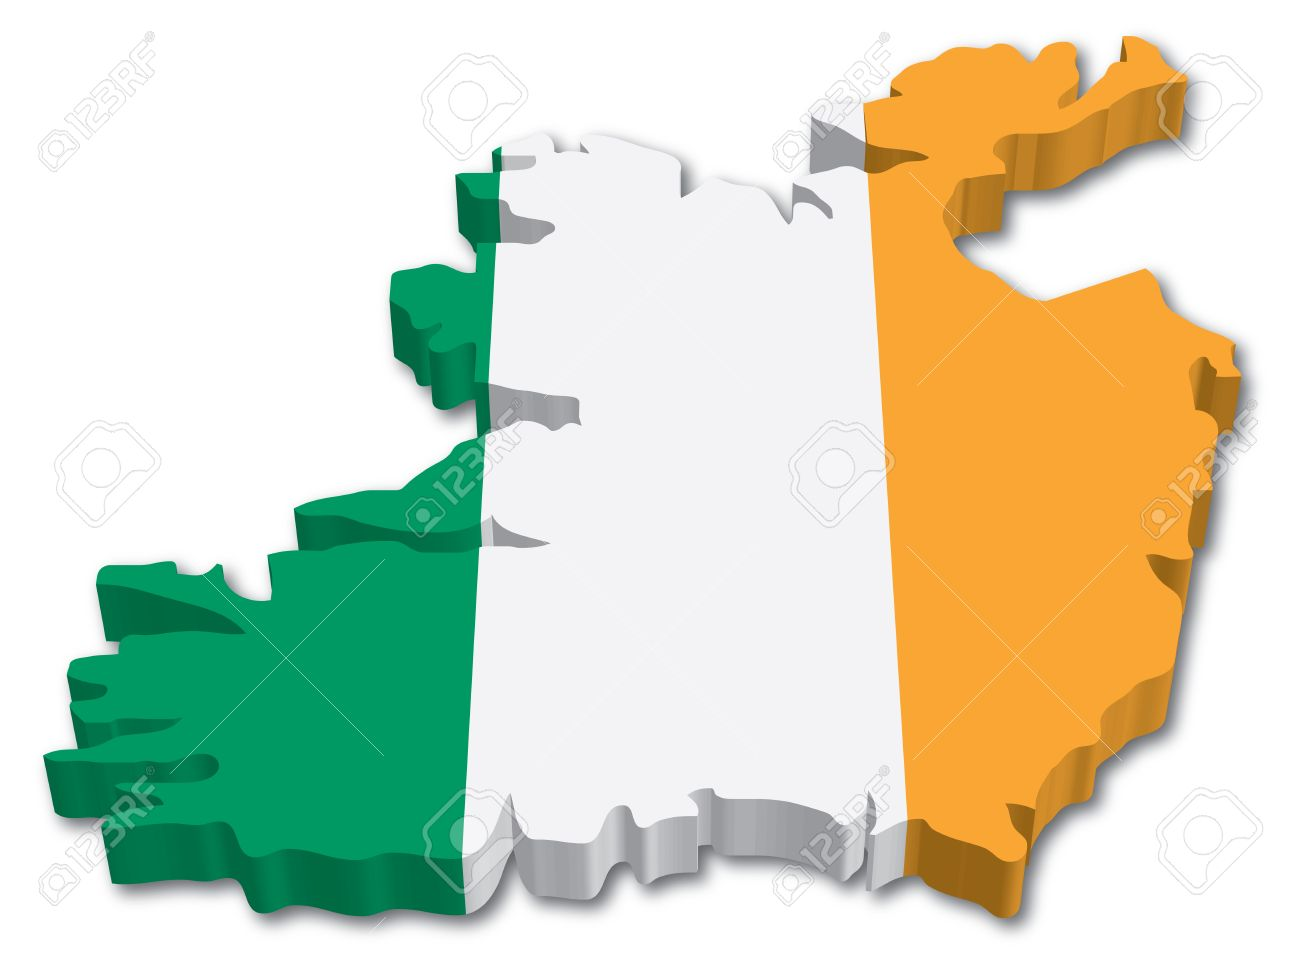 Map Of Ireland 3d.3d Ireland Map With Flag Illustration On White Background